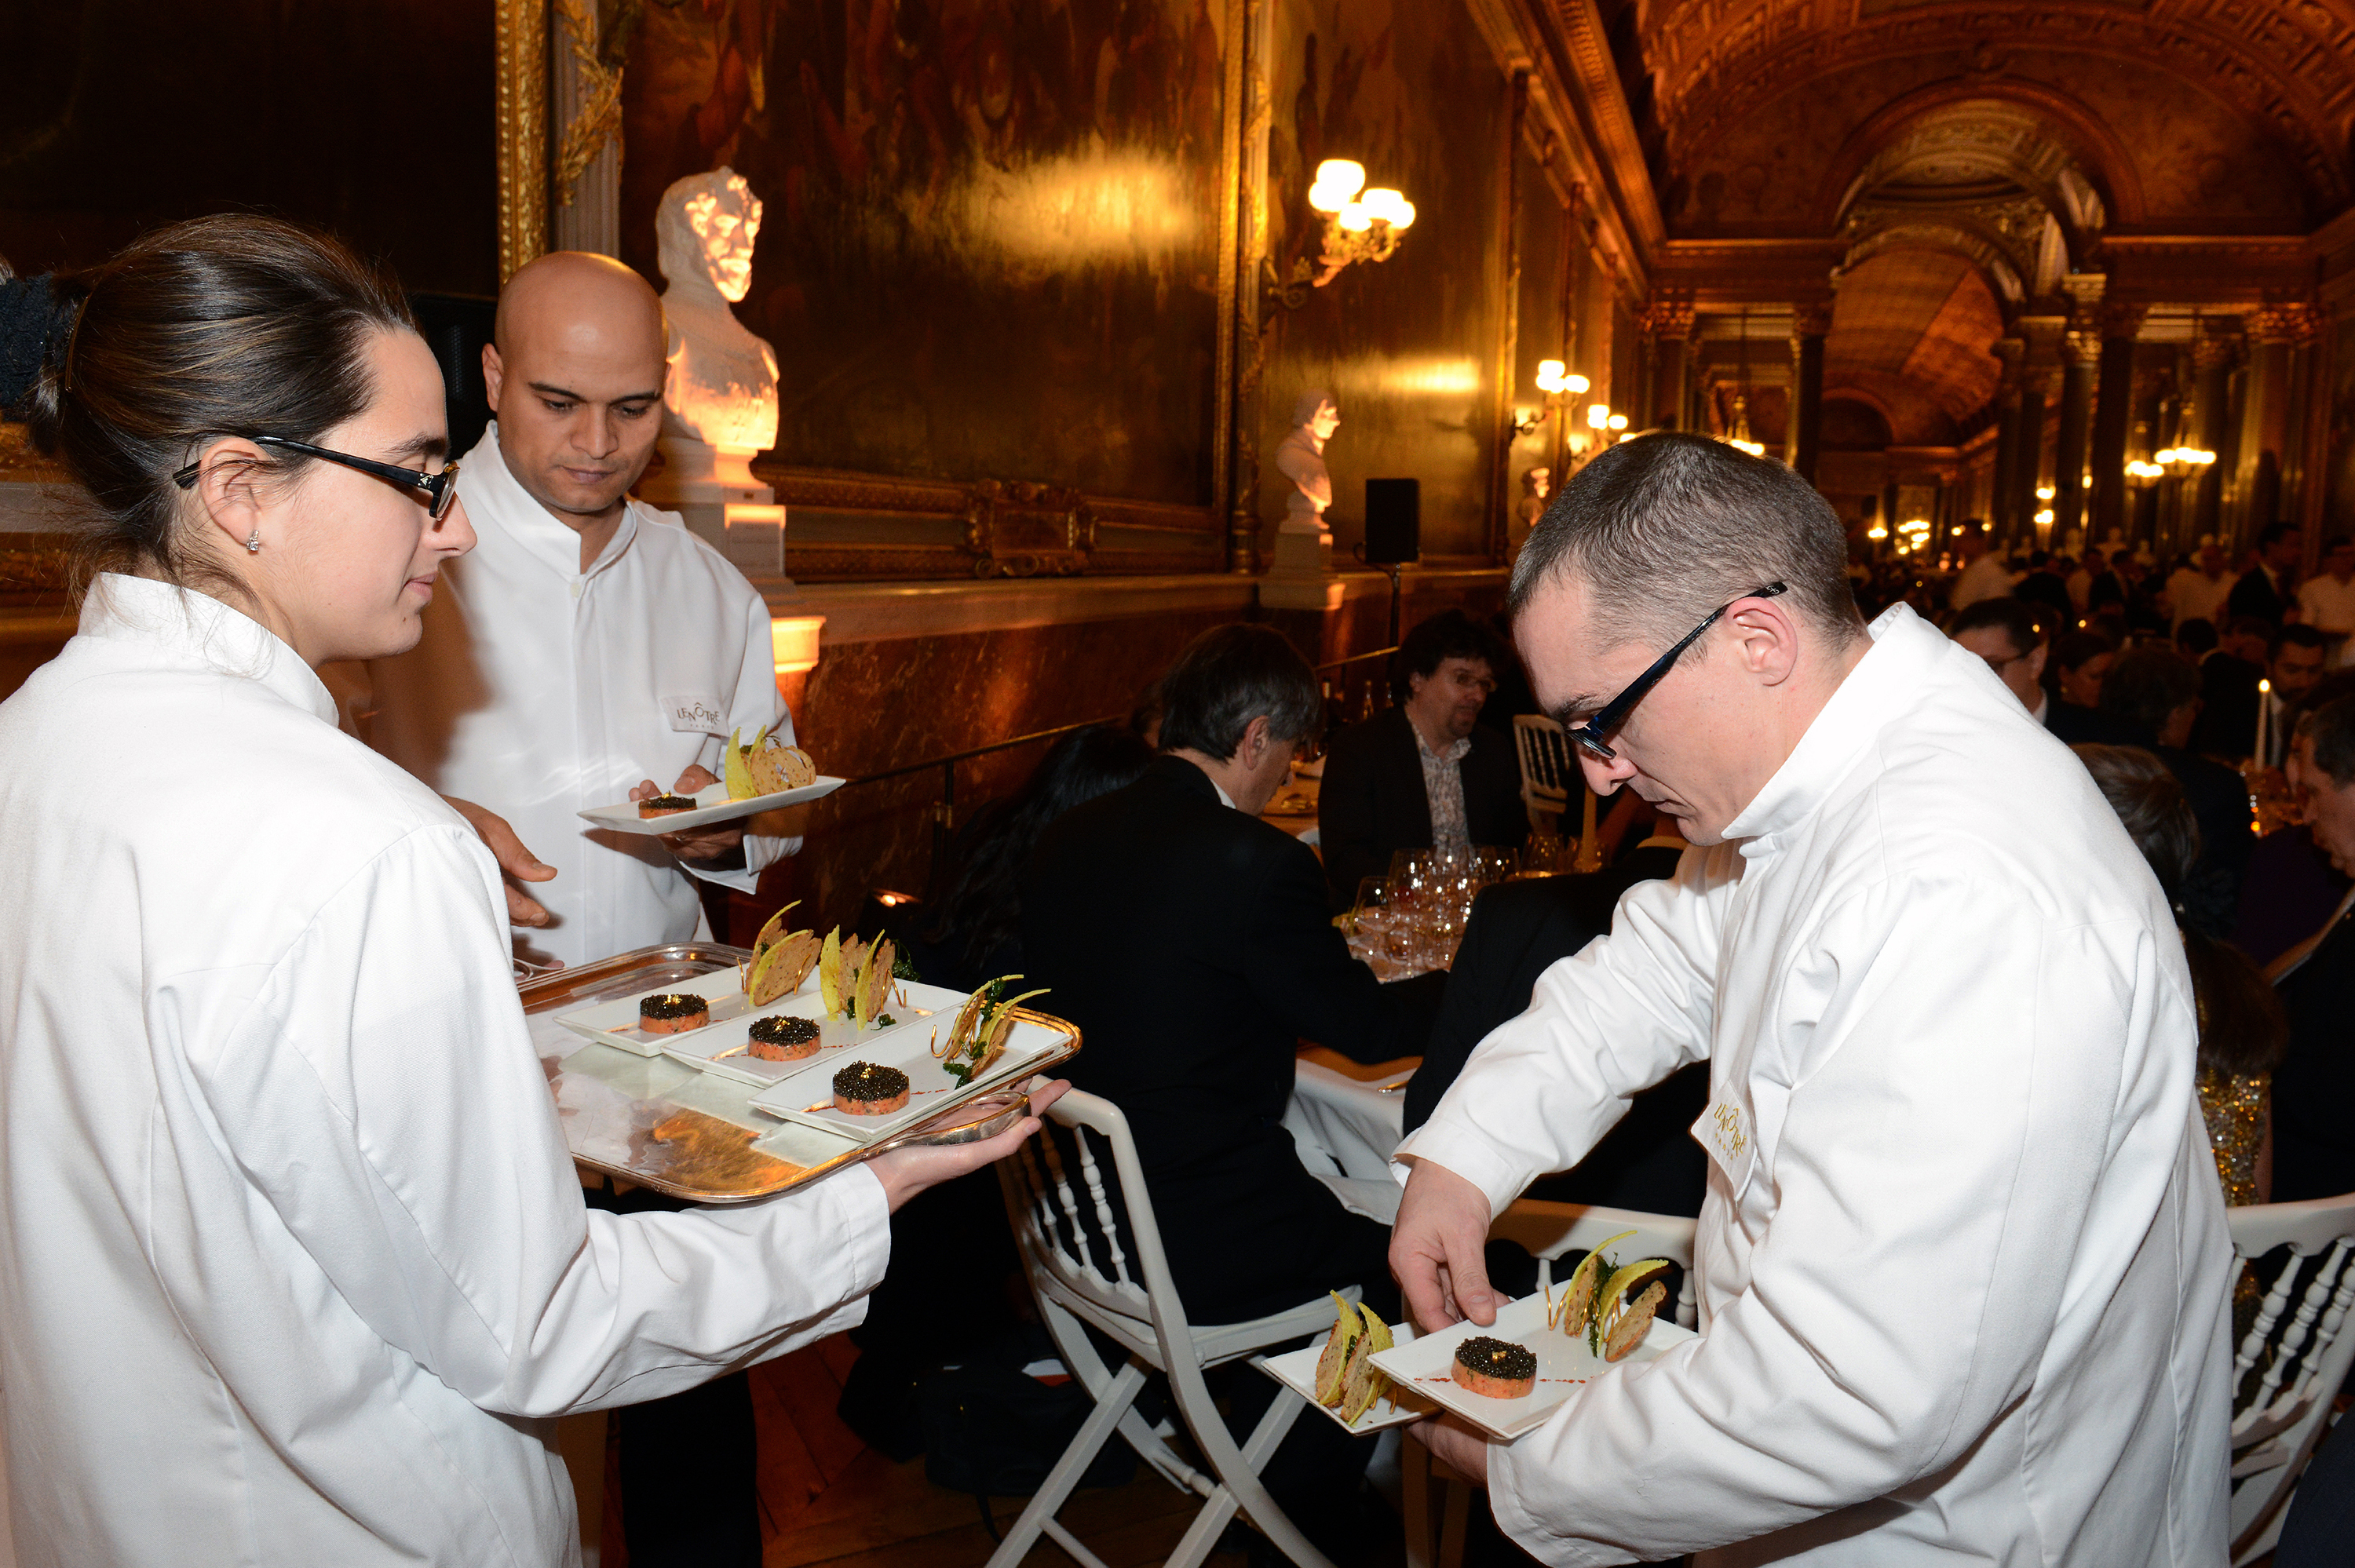 Liberte, Egalite, Gastronomie? France Rallies To Defend Its Food's Honor